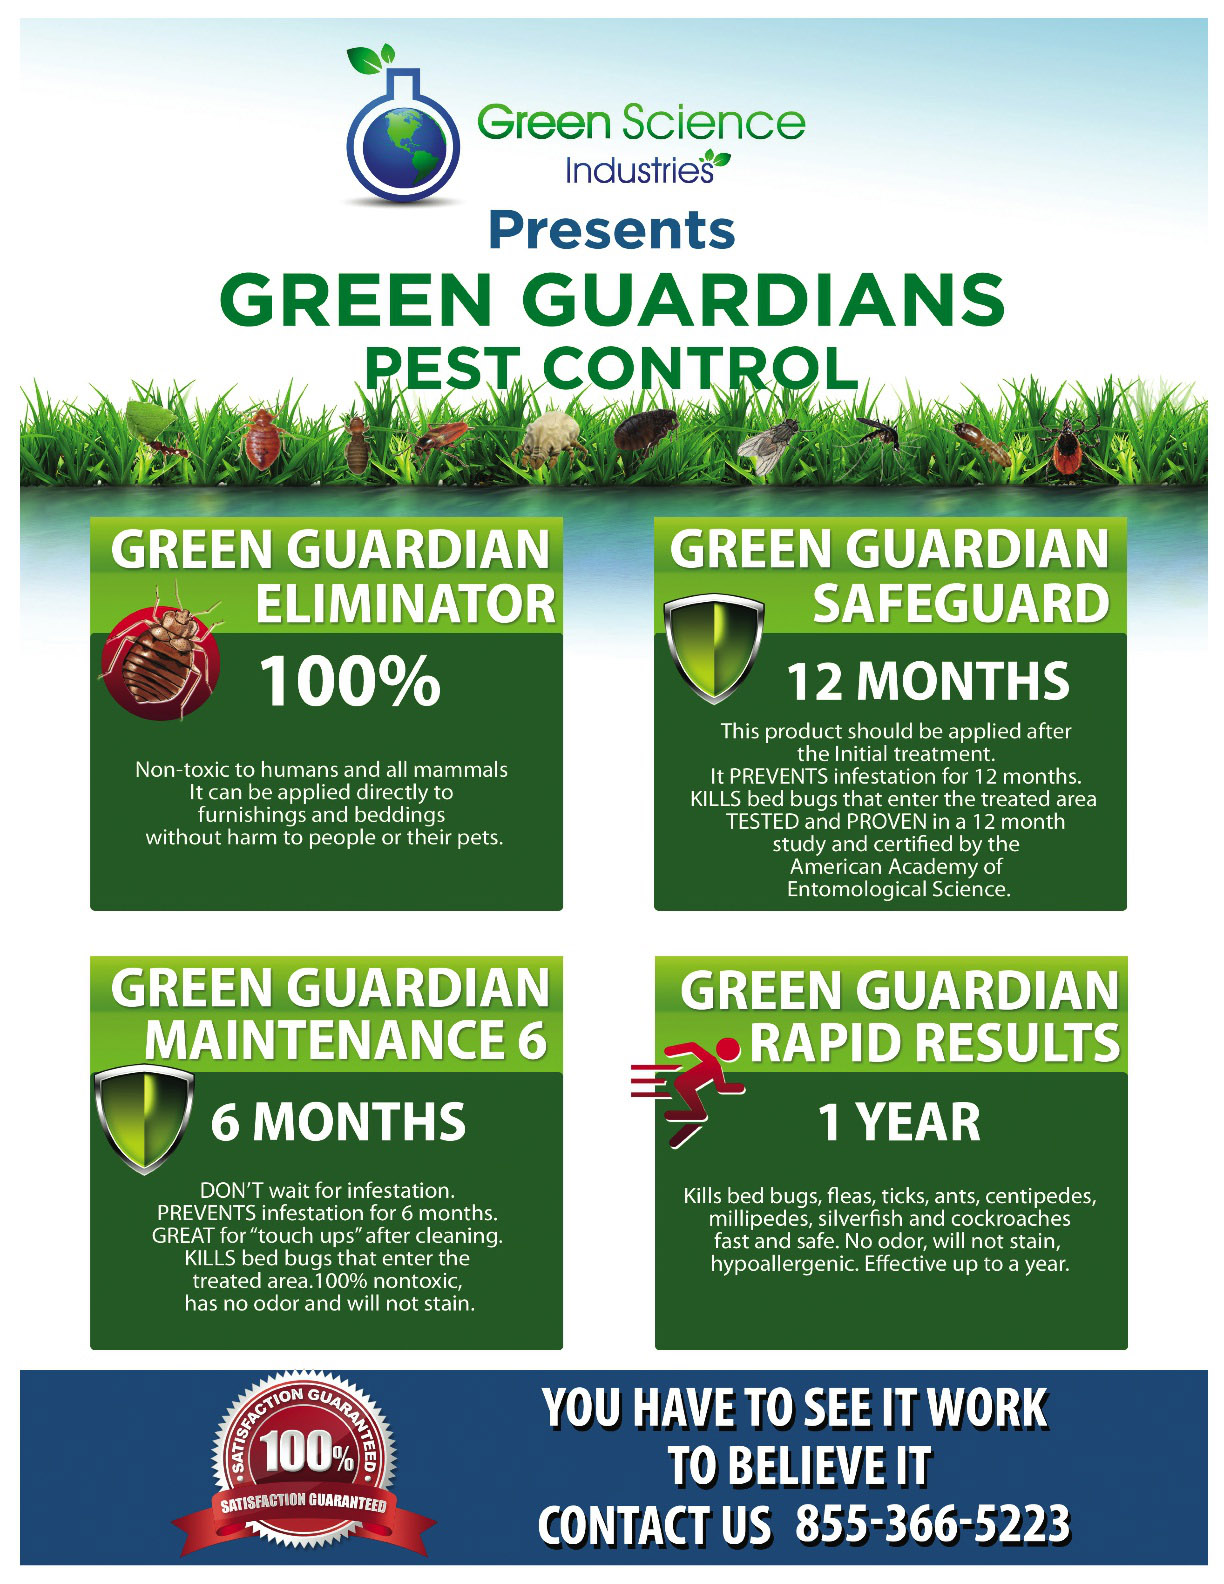 Green Guardians Pest Control